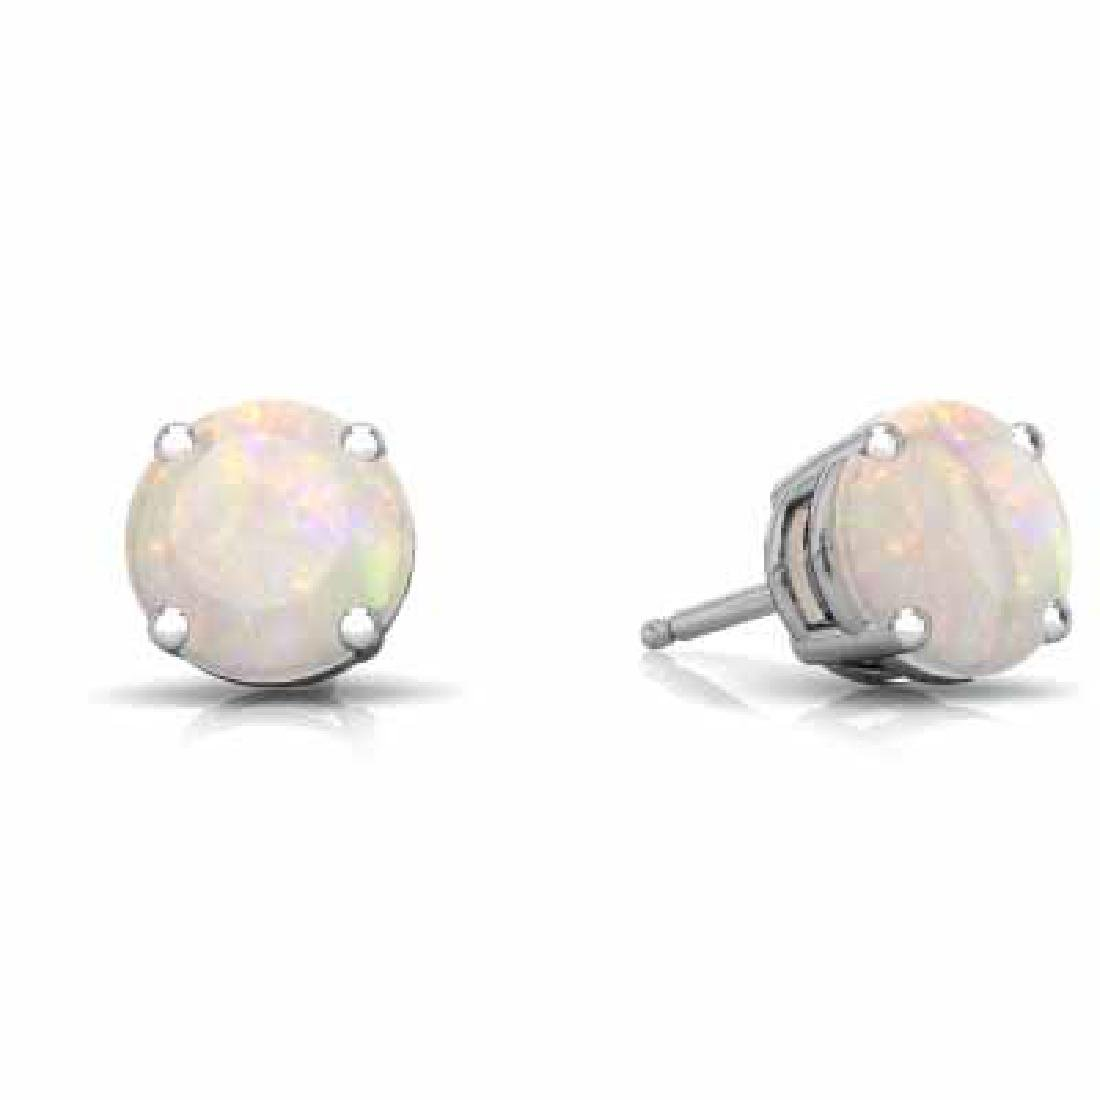 2 CARAT CREATED FIRE OPAL 925 STERLING SILVER EARRINGS